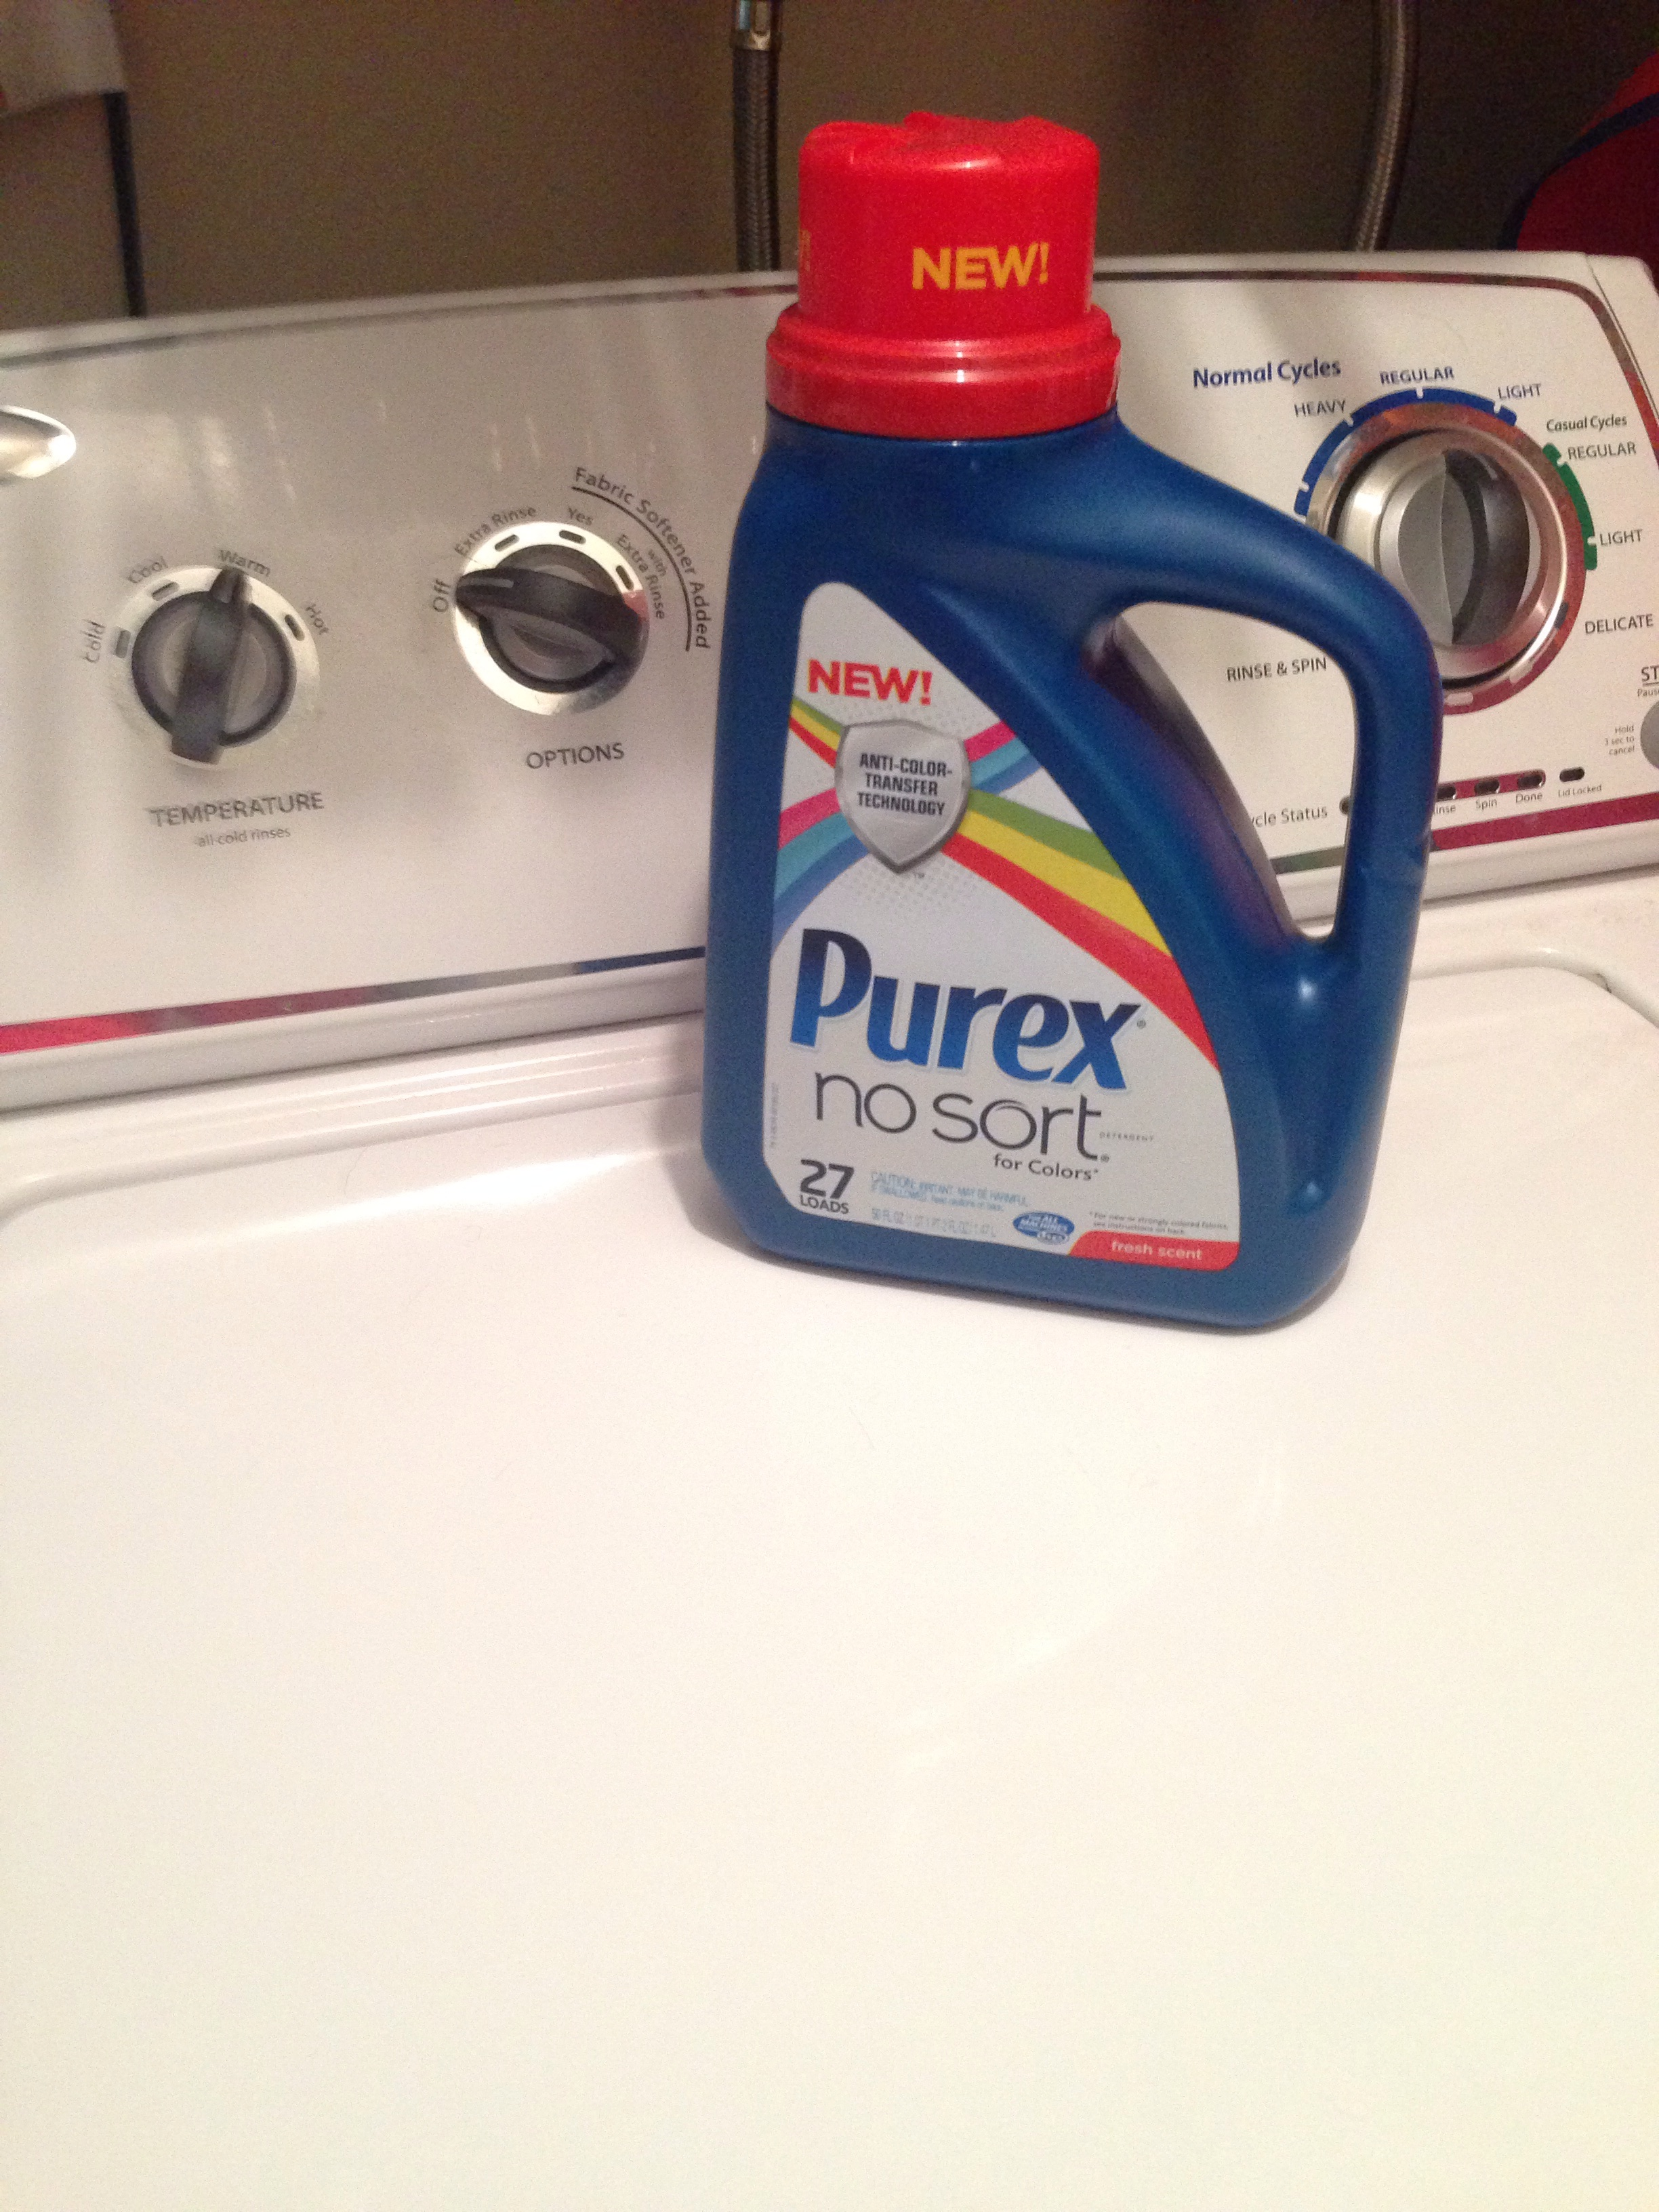 New Purex No Sort Laundry Detergent Free Product Coupon